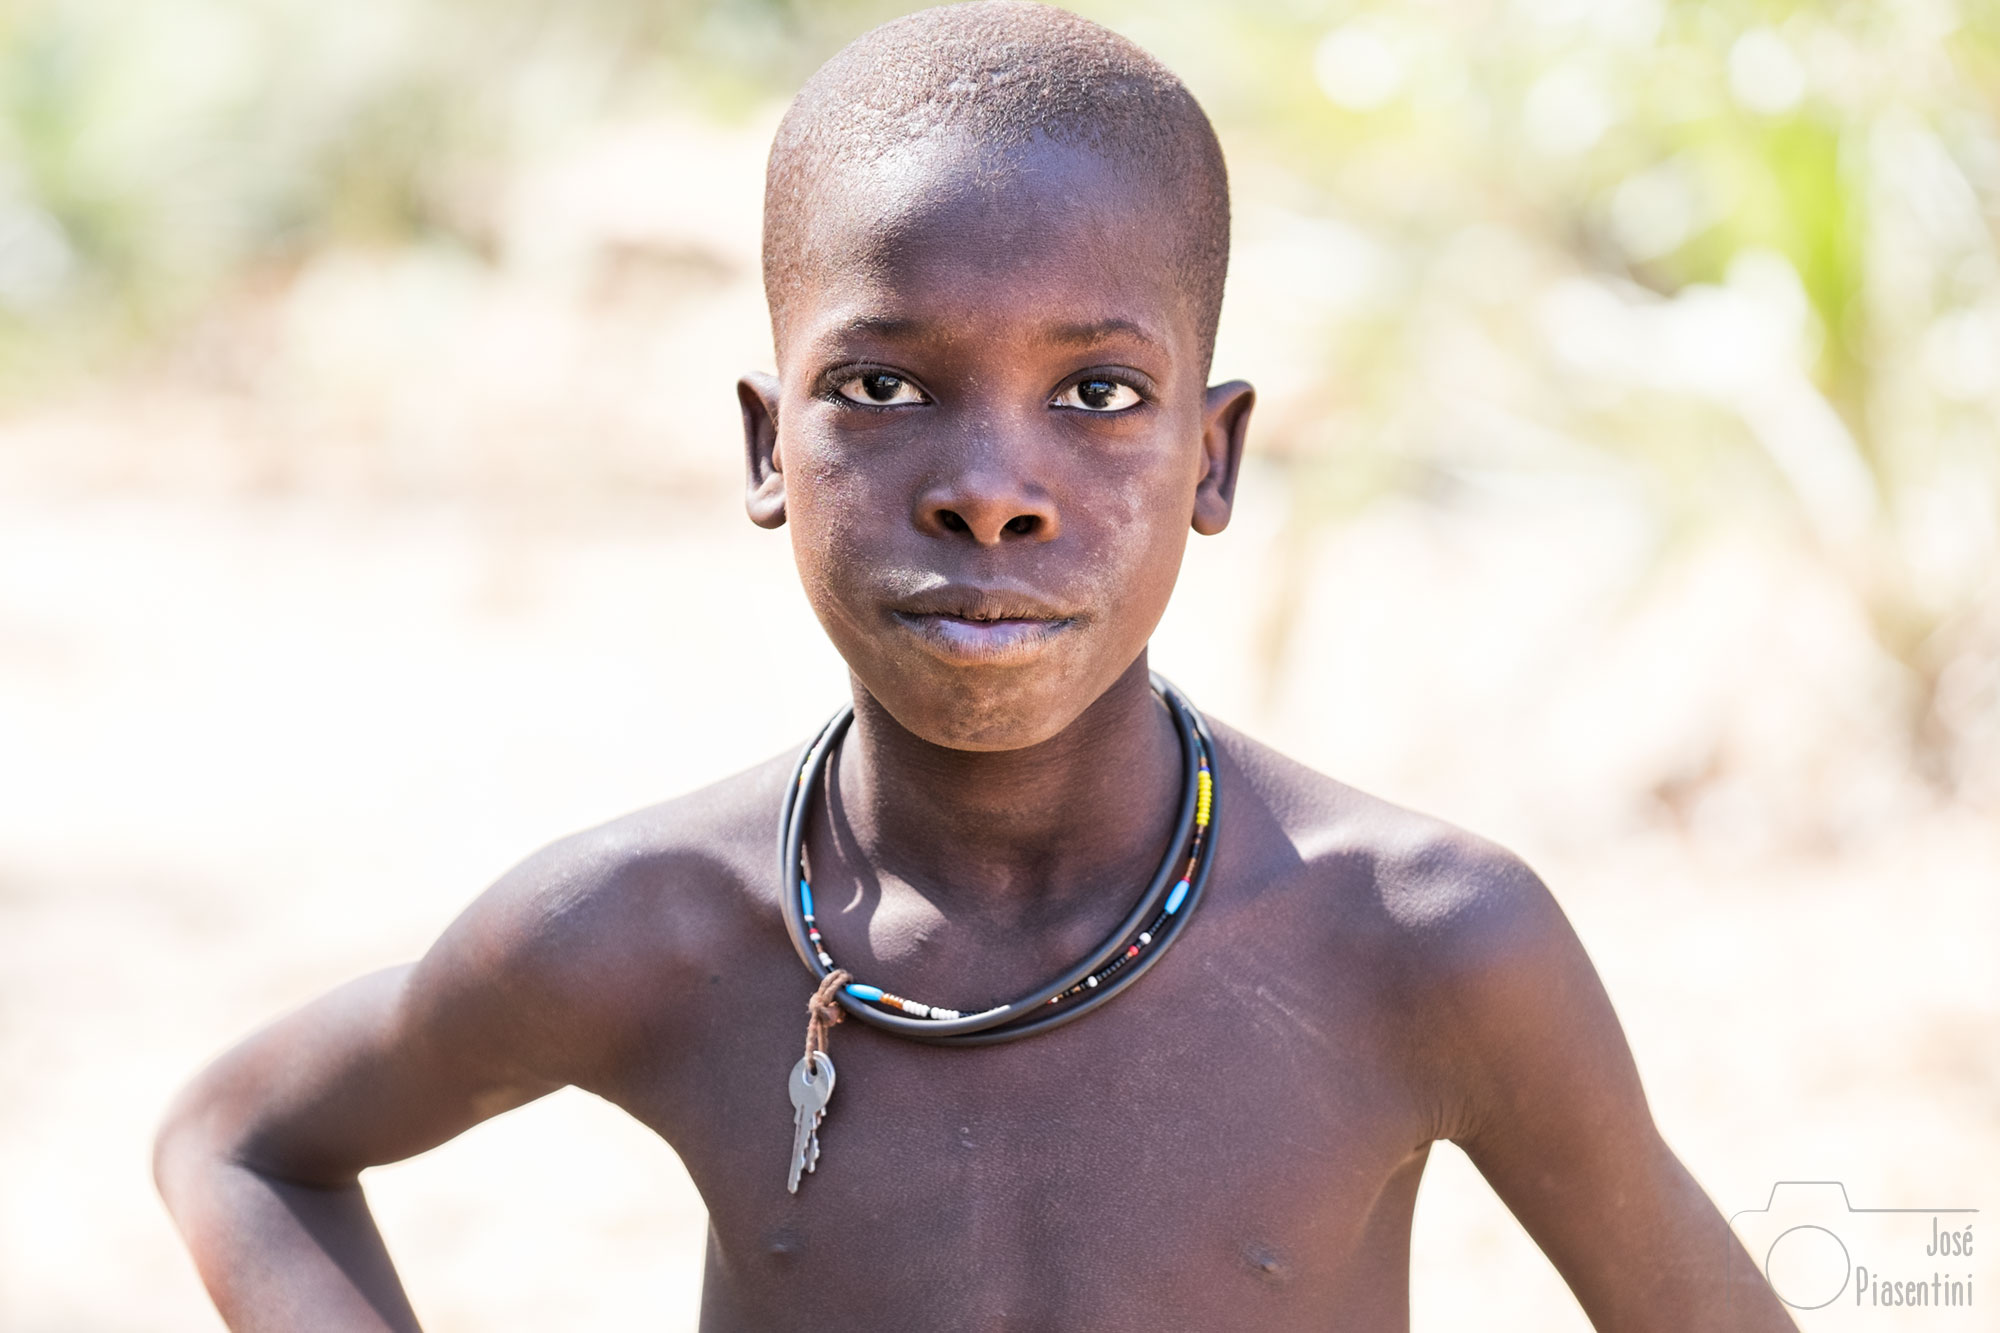 Young Himba portrait